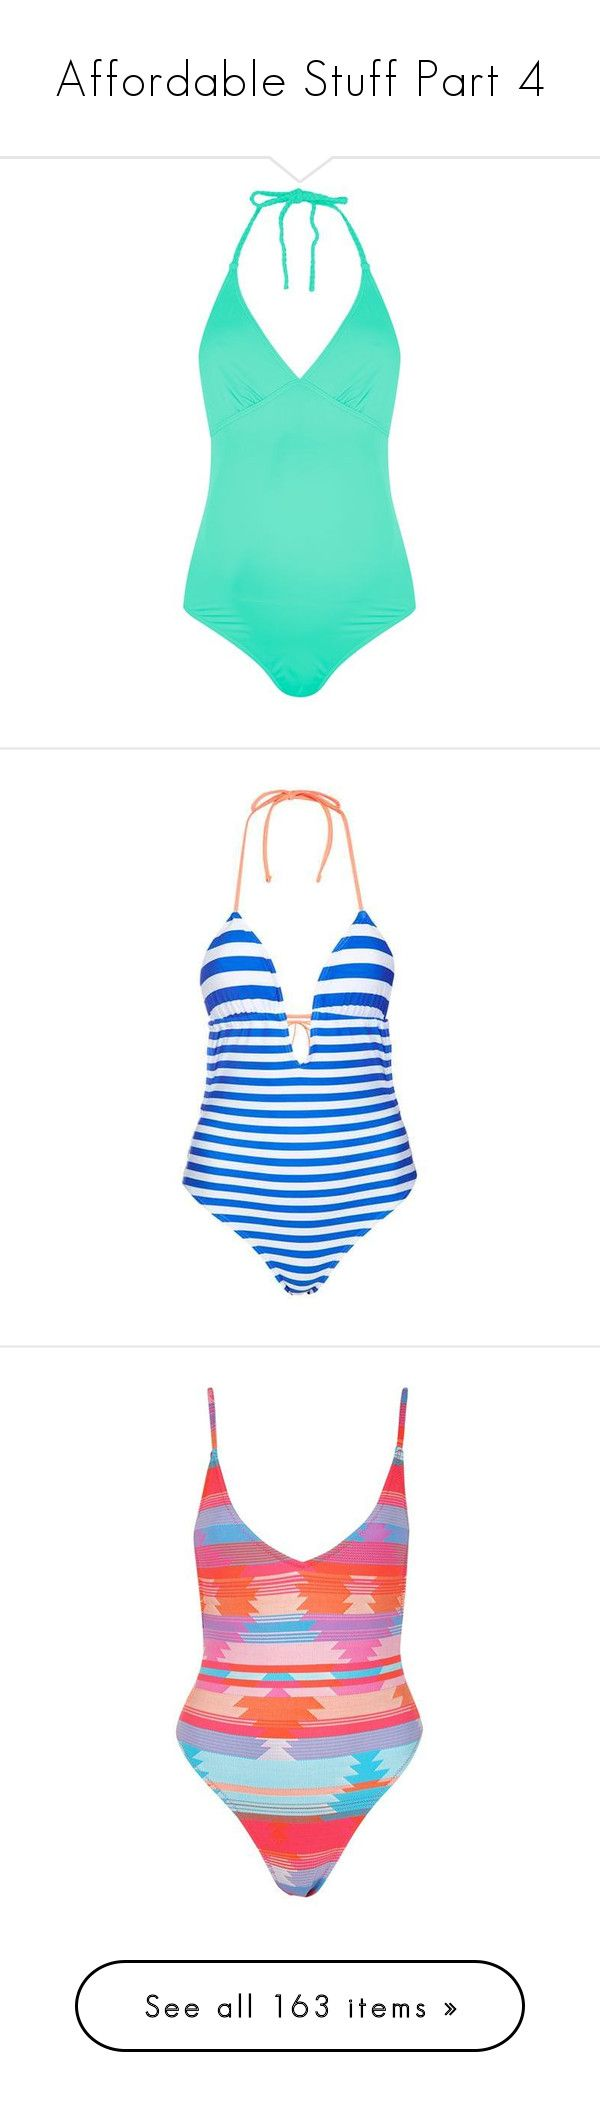 """""""Affordable Stuff Part 4"""" by drazahybbag ❤ liked on Polyvore featuring swimwear, one-piece swimsuits, halter swimsuit, striped swimsuit, nautical one piece swimsuit, halter neck swimsuit, topshop bathing suits, swim suits, aztec swimwear and topshop swimwear"""